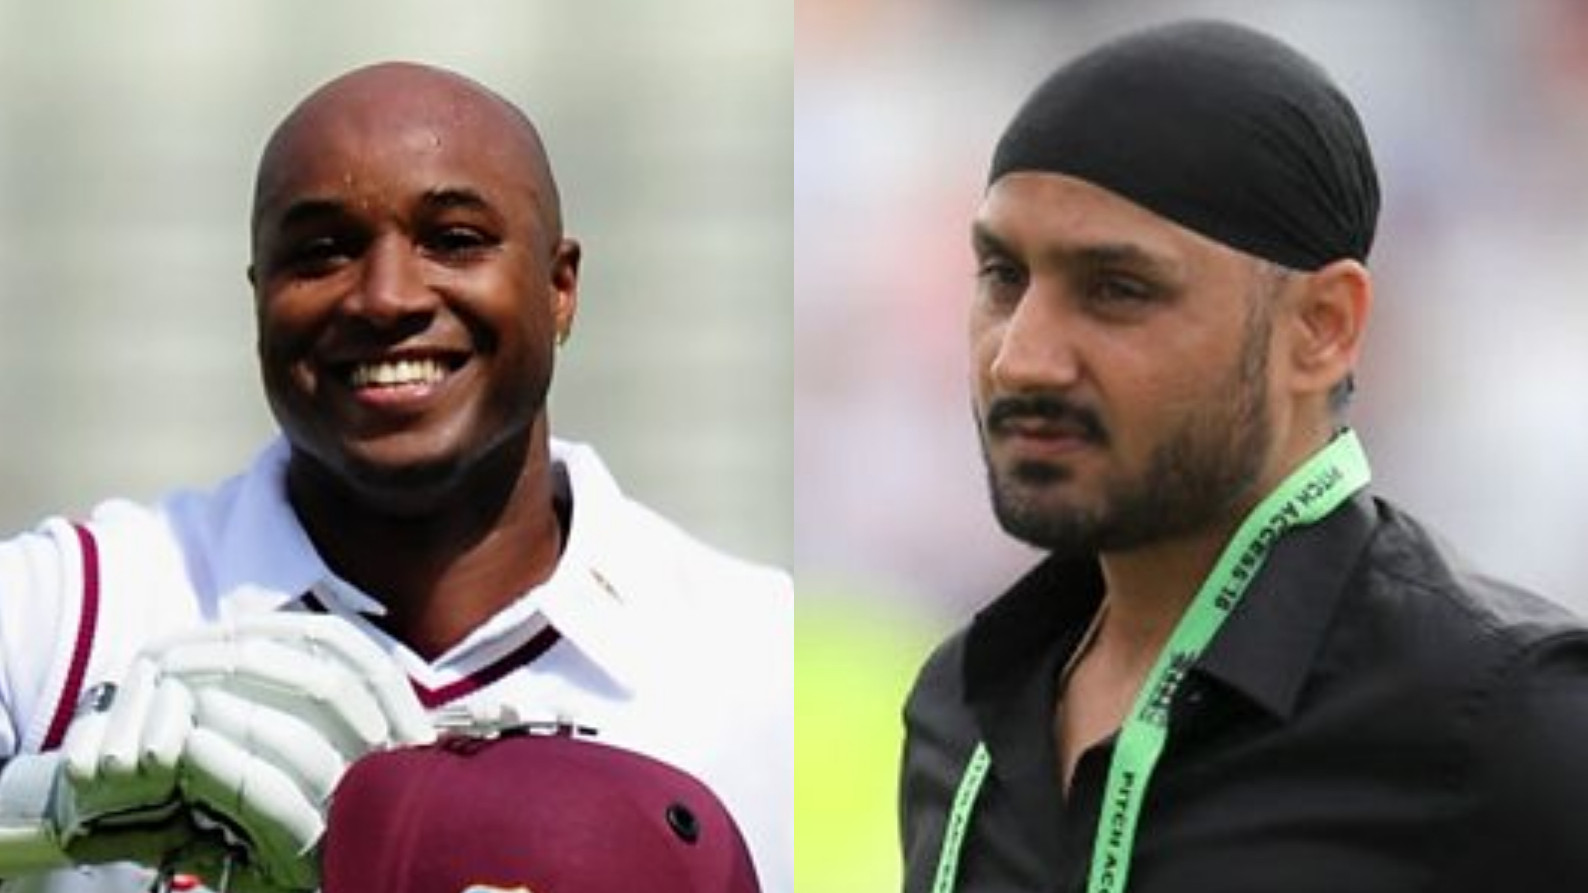 IND v WI 2018: Harbhajan Singh gets an apt reply from Tino Best after his criticism of Windies